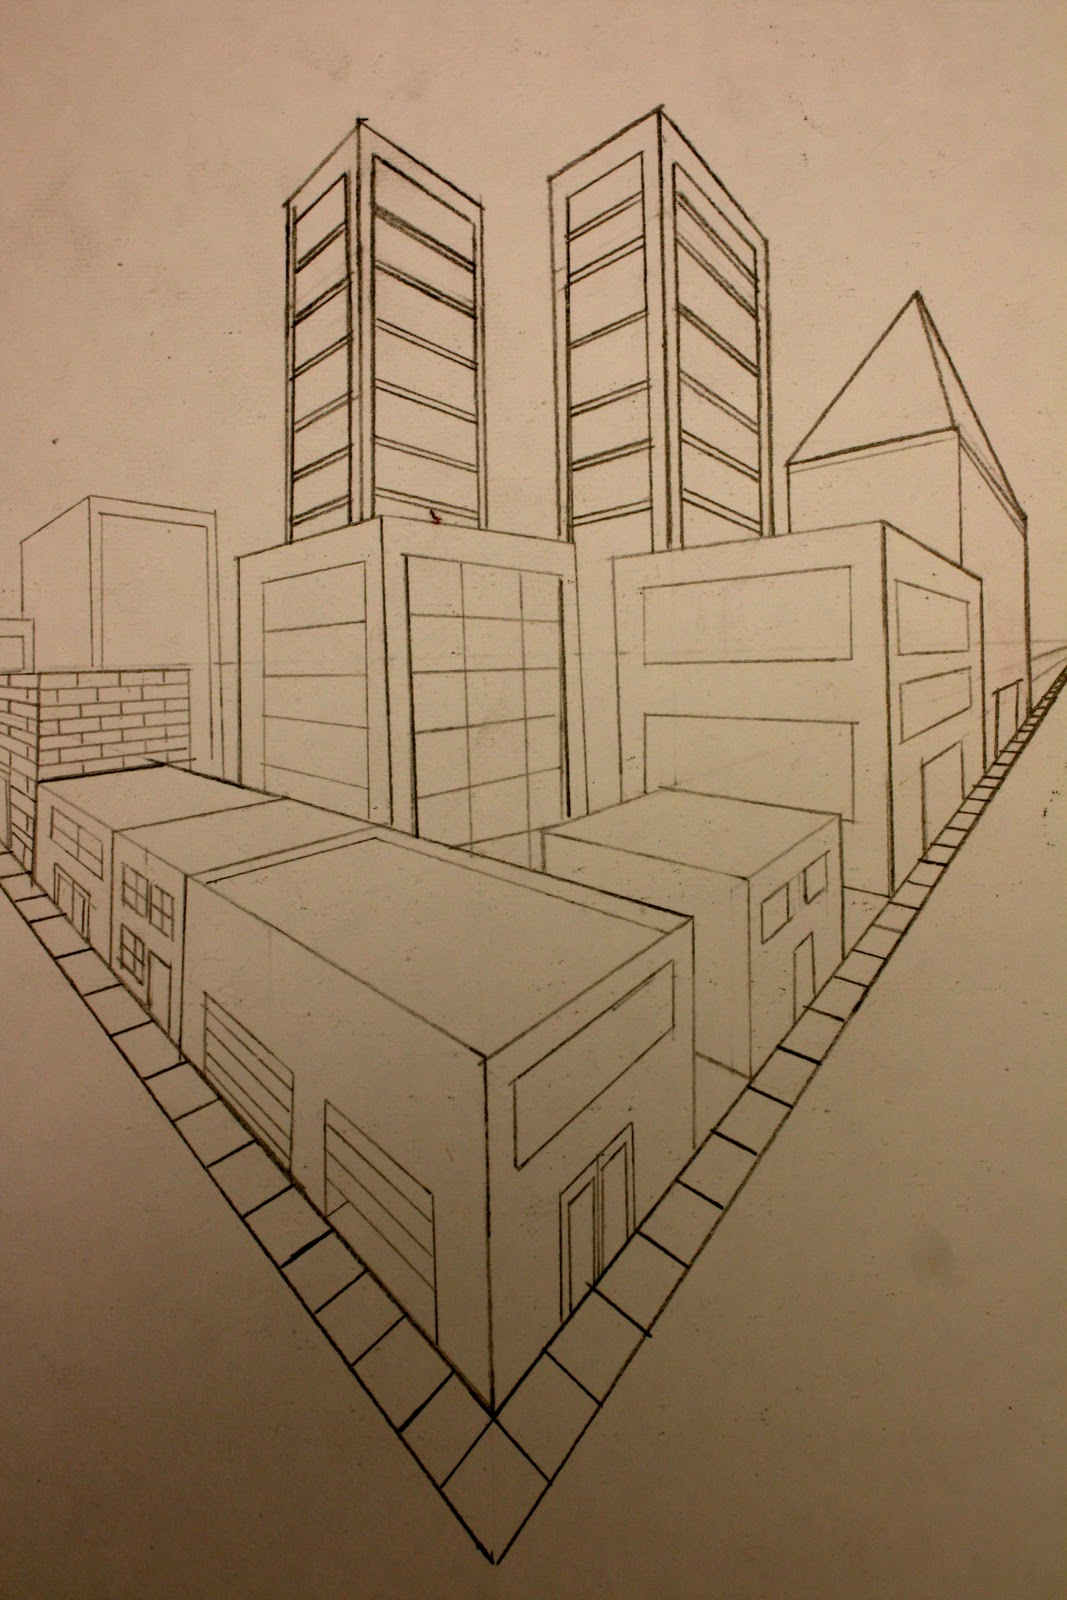 Perspective Drawing Room: The Art Class: Additional Perspective Pieces